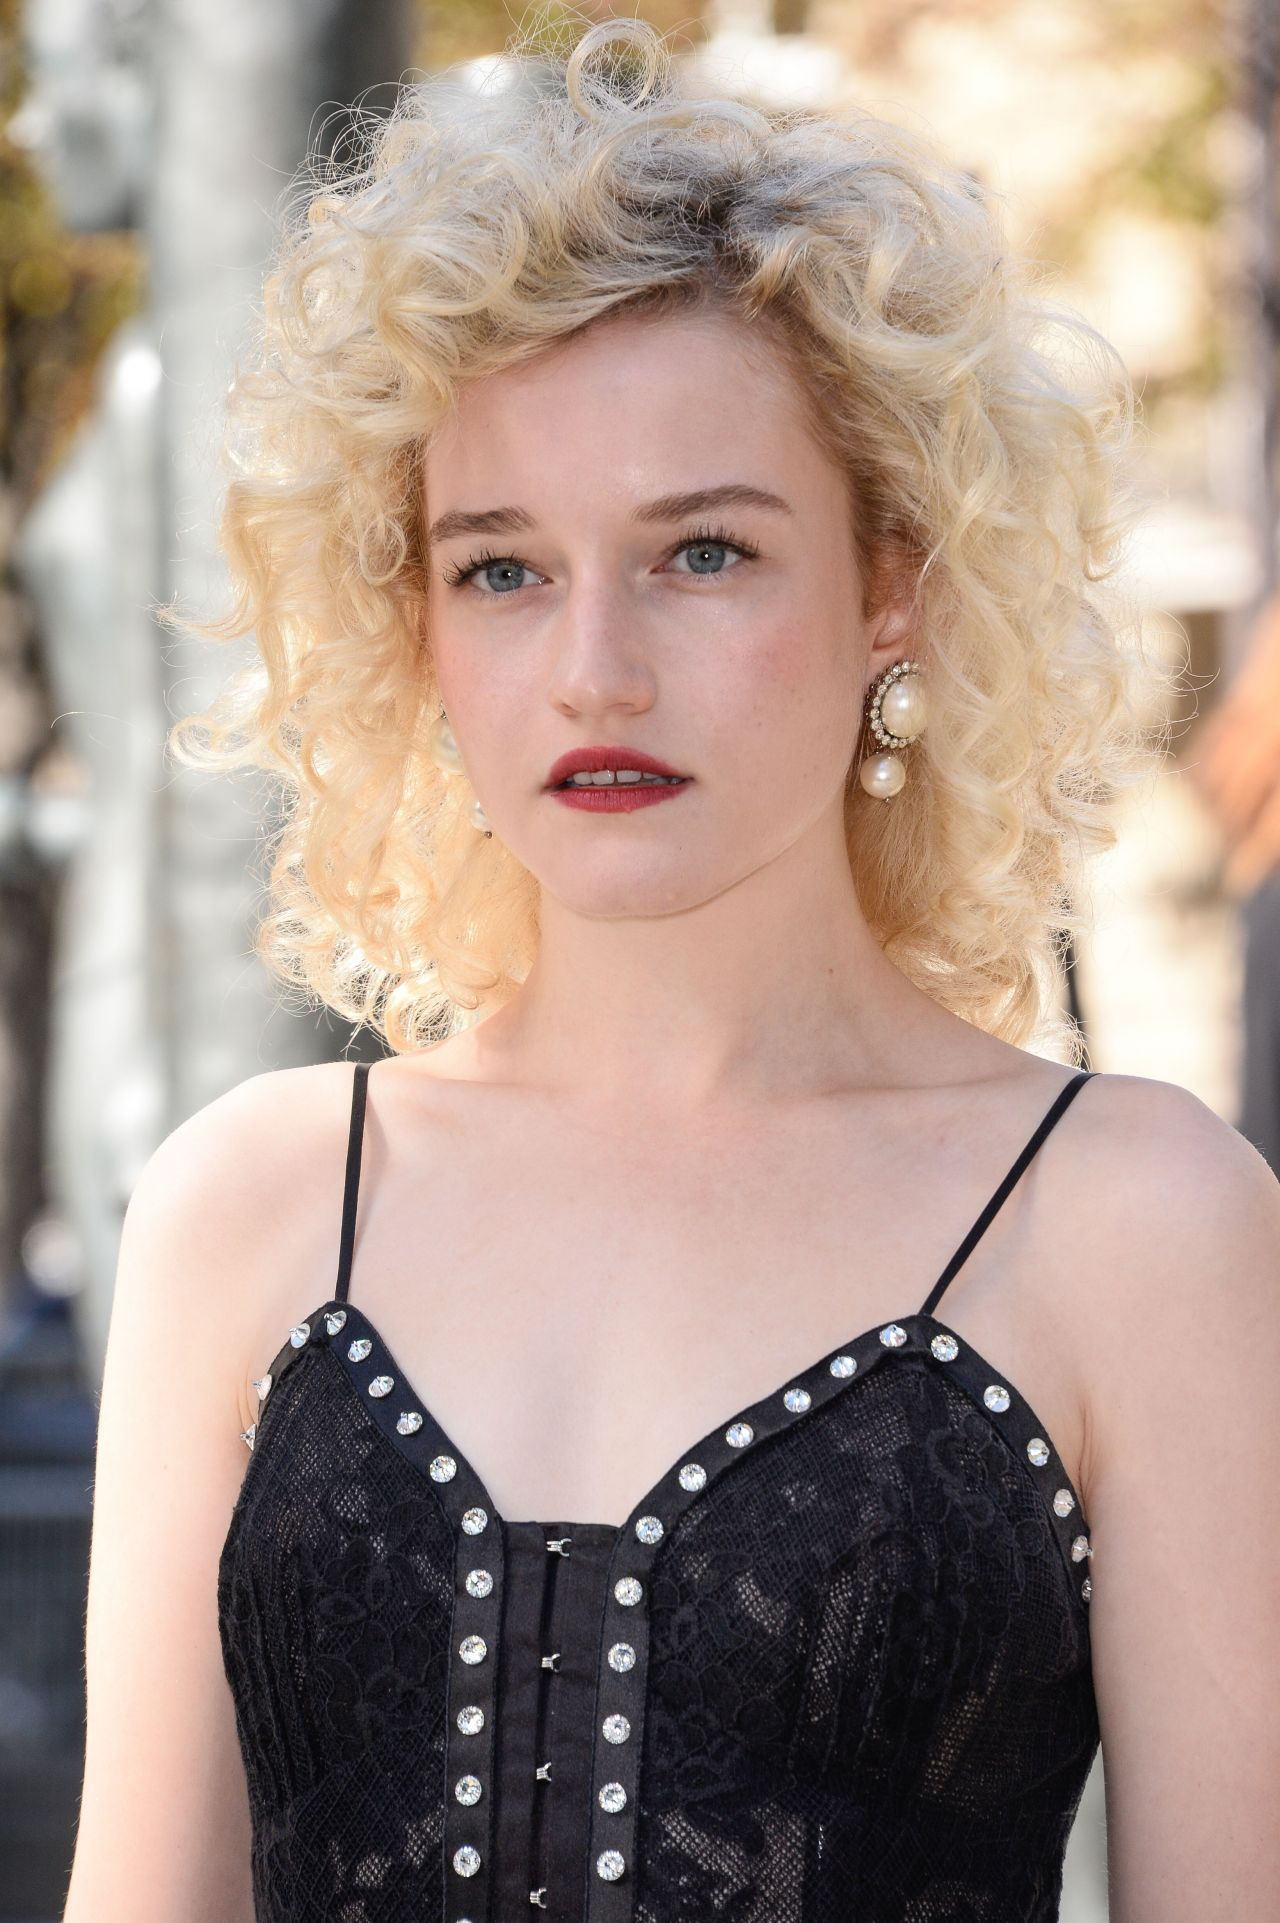 Julia Garner See Through 13 Photos: Miu Miu Fashion Show In Paris 10/03/2017